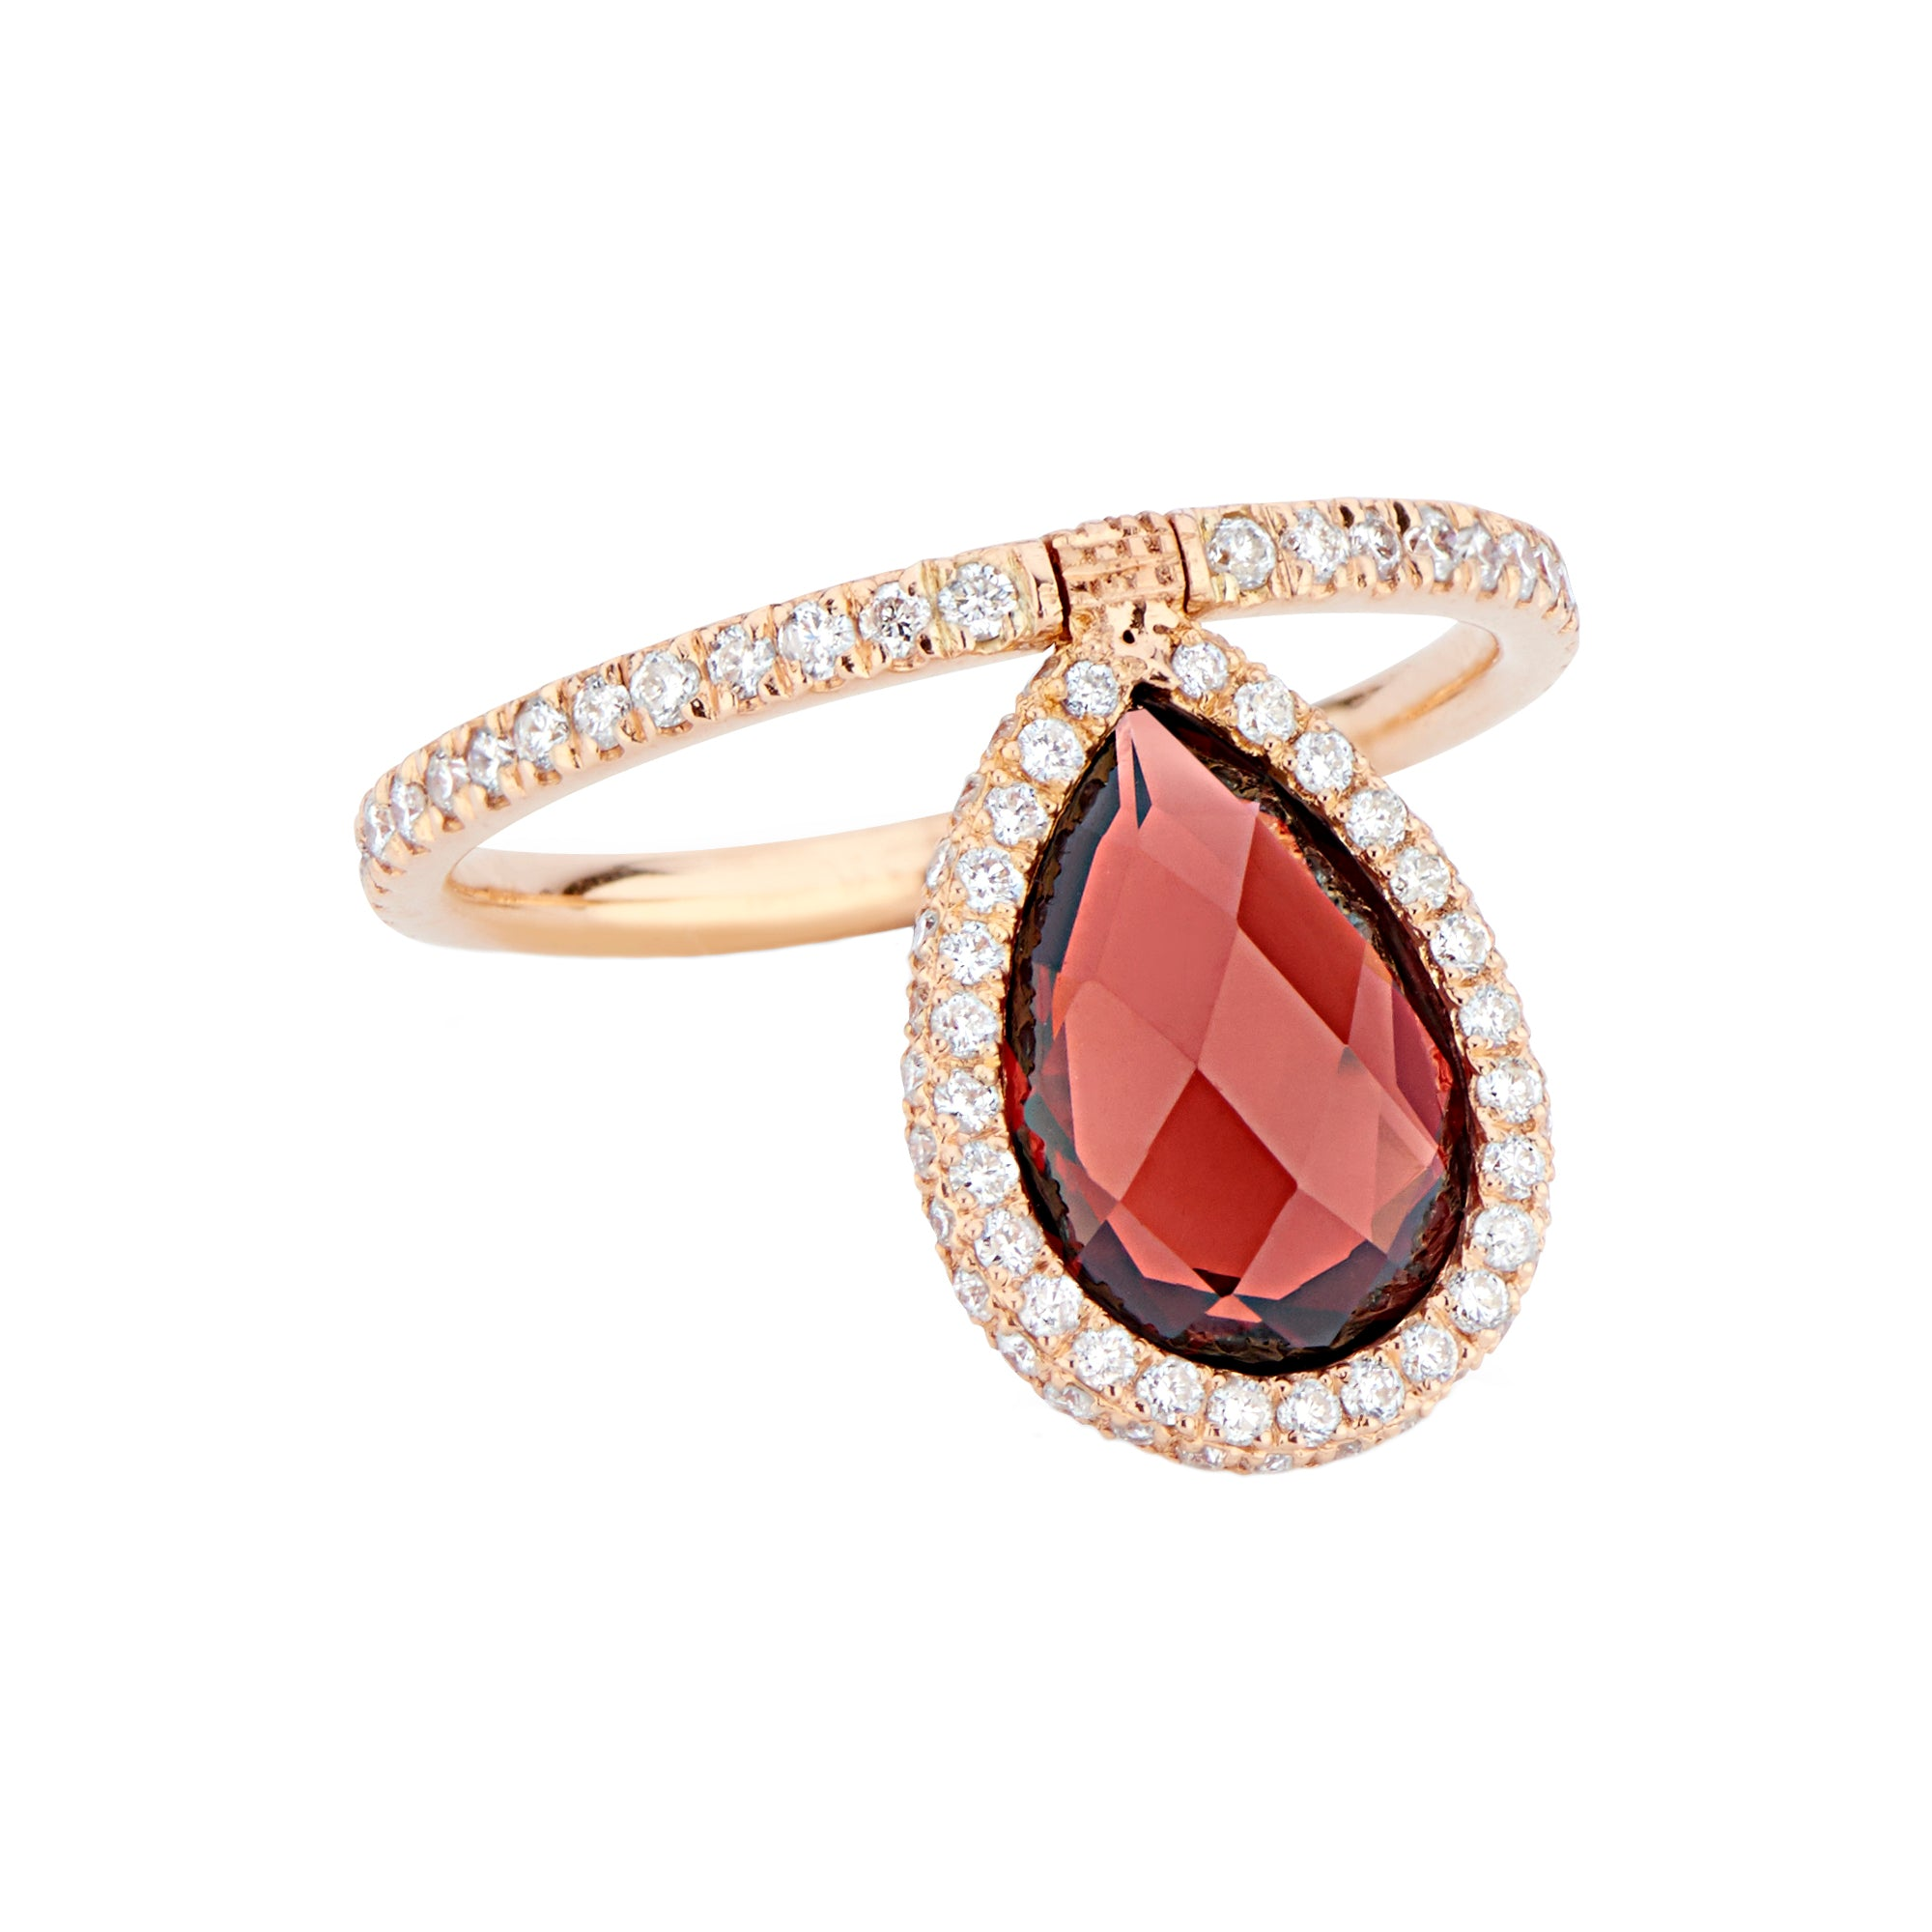 Medium Garnet Flip Ring by Nina Runsdorf for Broken English Jewelry